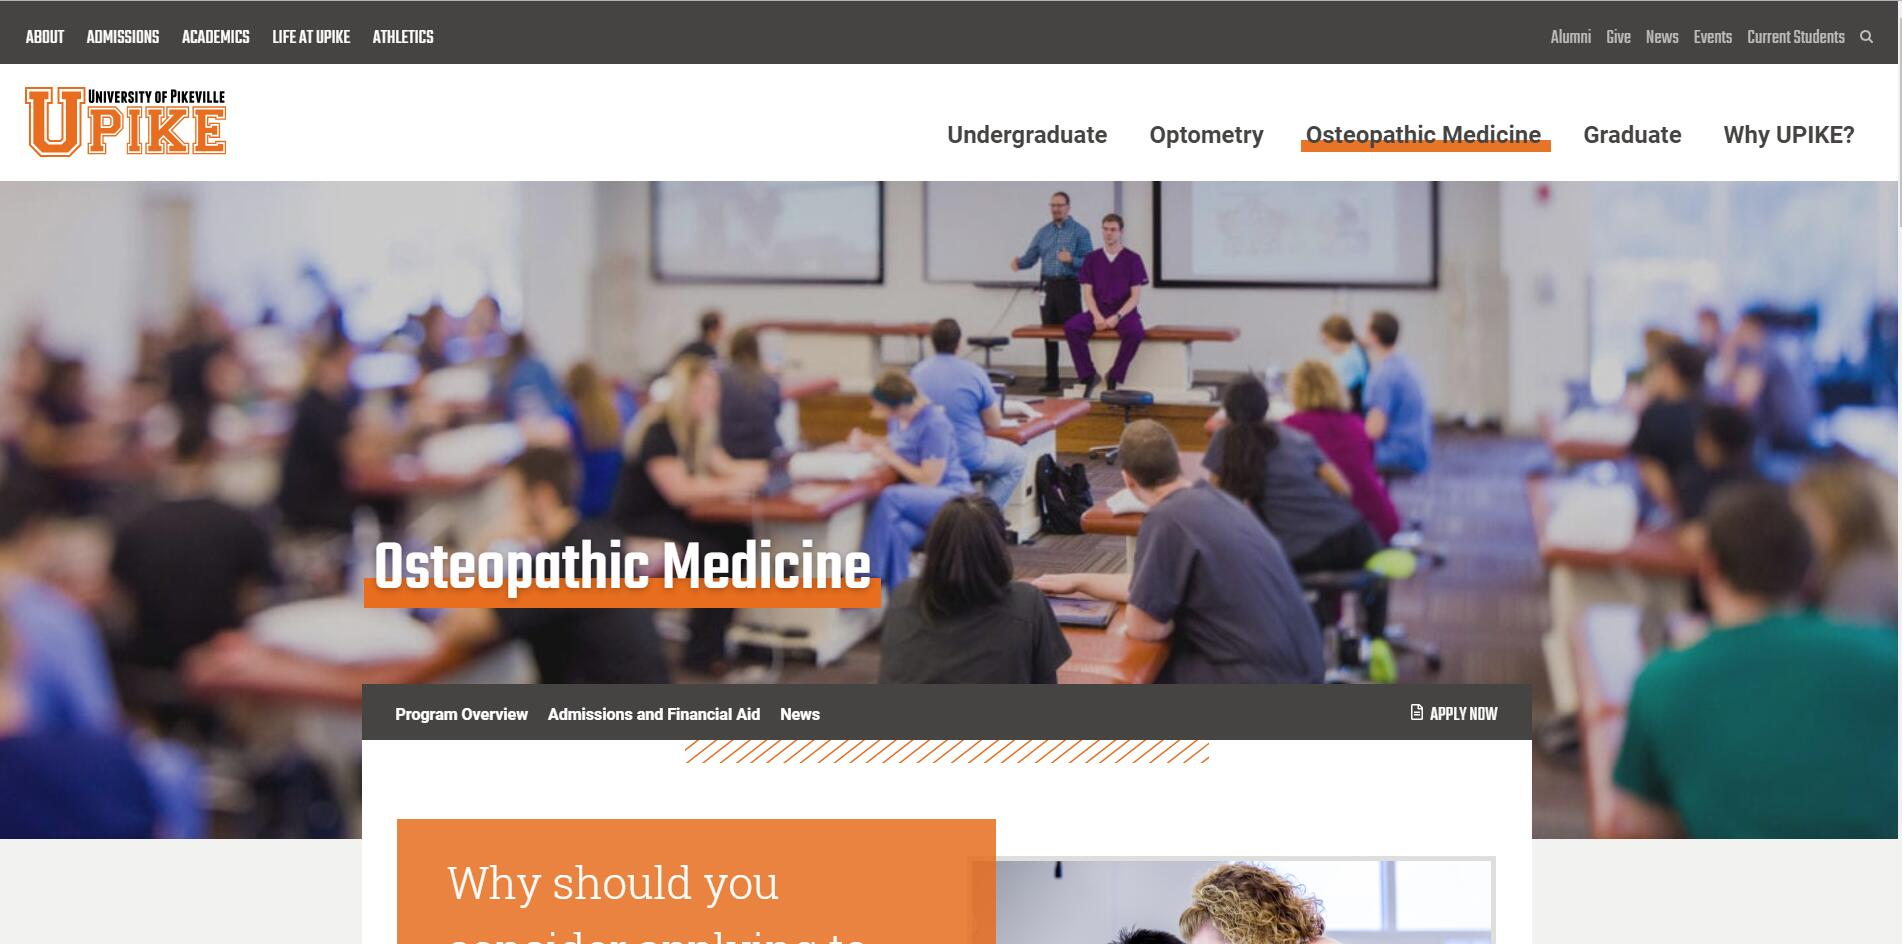 University of Pikeville Kentucky College of Osteopathic Medicine Admissions Statistics and Rankings